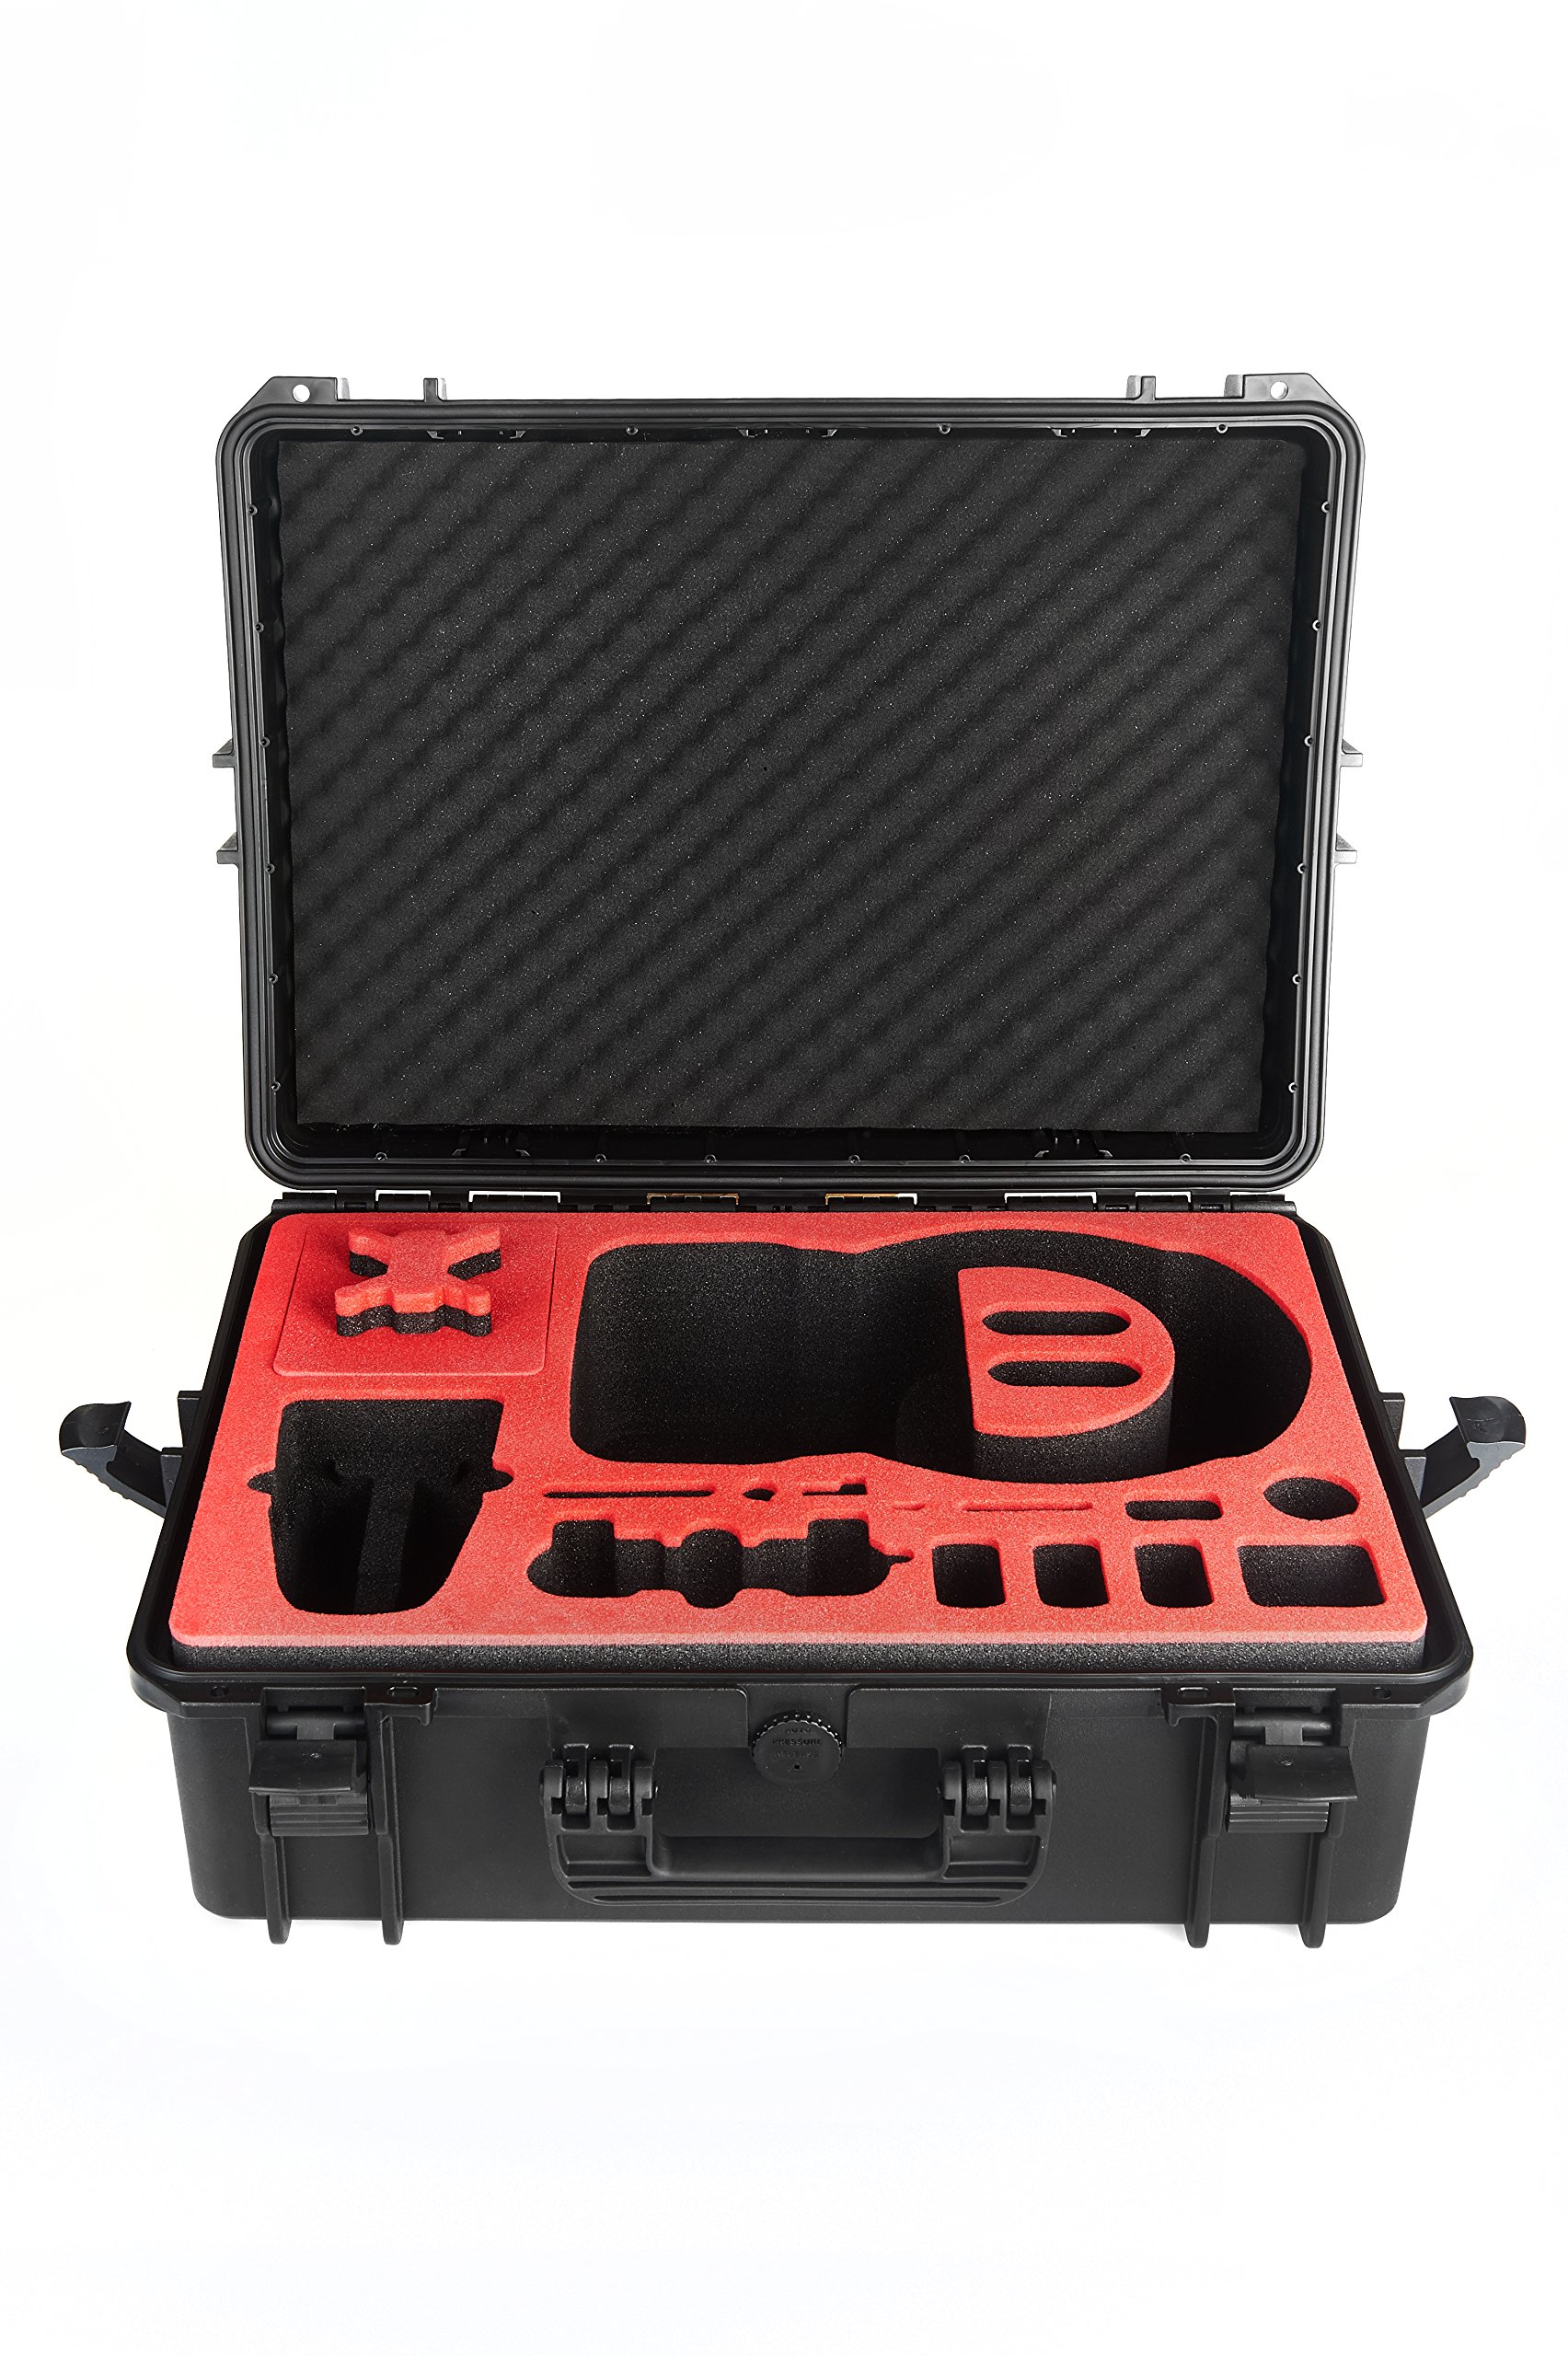 Professional Carrying Case for DJI Mavic AIR - Made in Germany - by MC-CASES (Case for DJI Goggles and DJI Mavic Air) by mc-cases (Image #5)